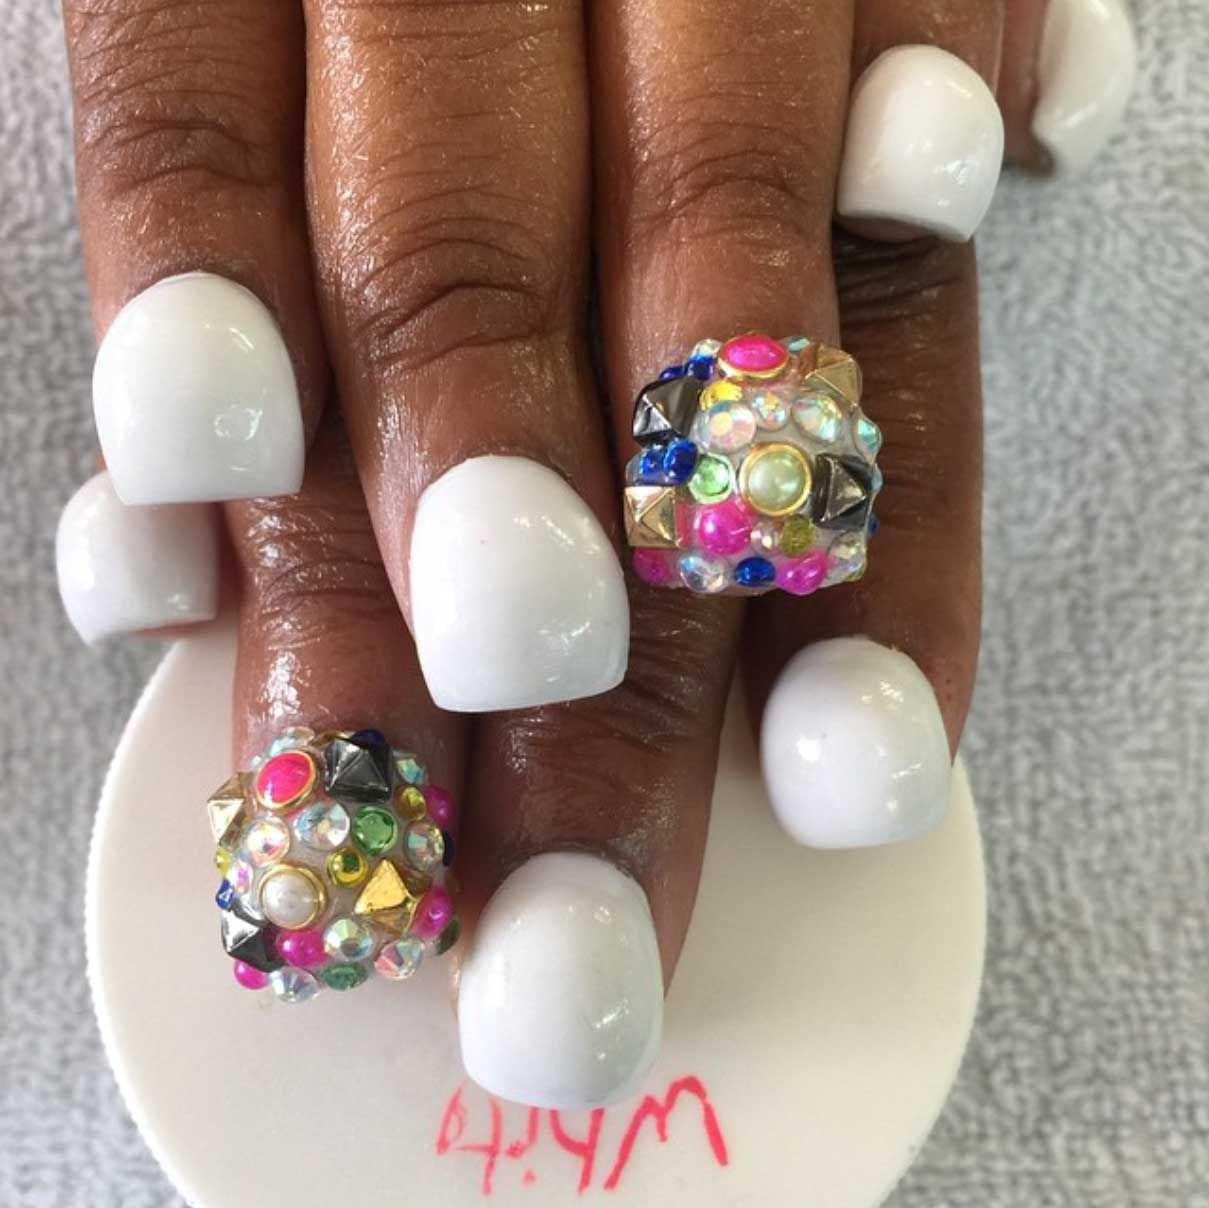 22 Weird Nail Trends That Shouldn't Exist |Odd Nail Shapes